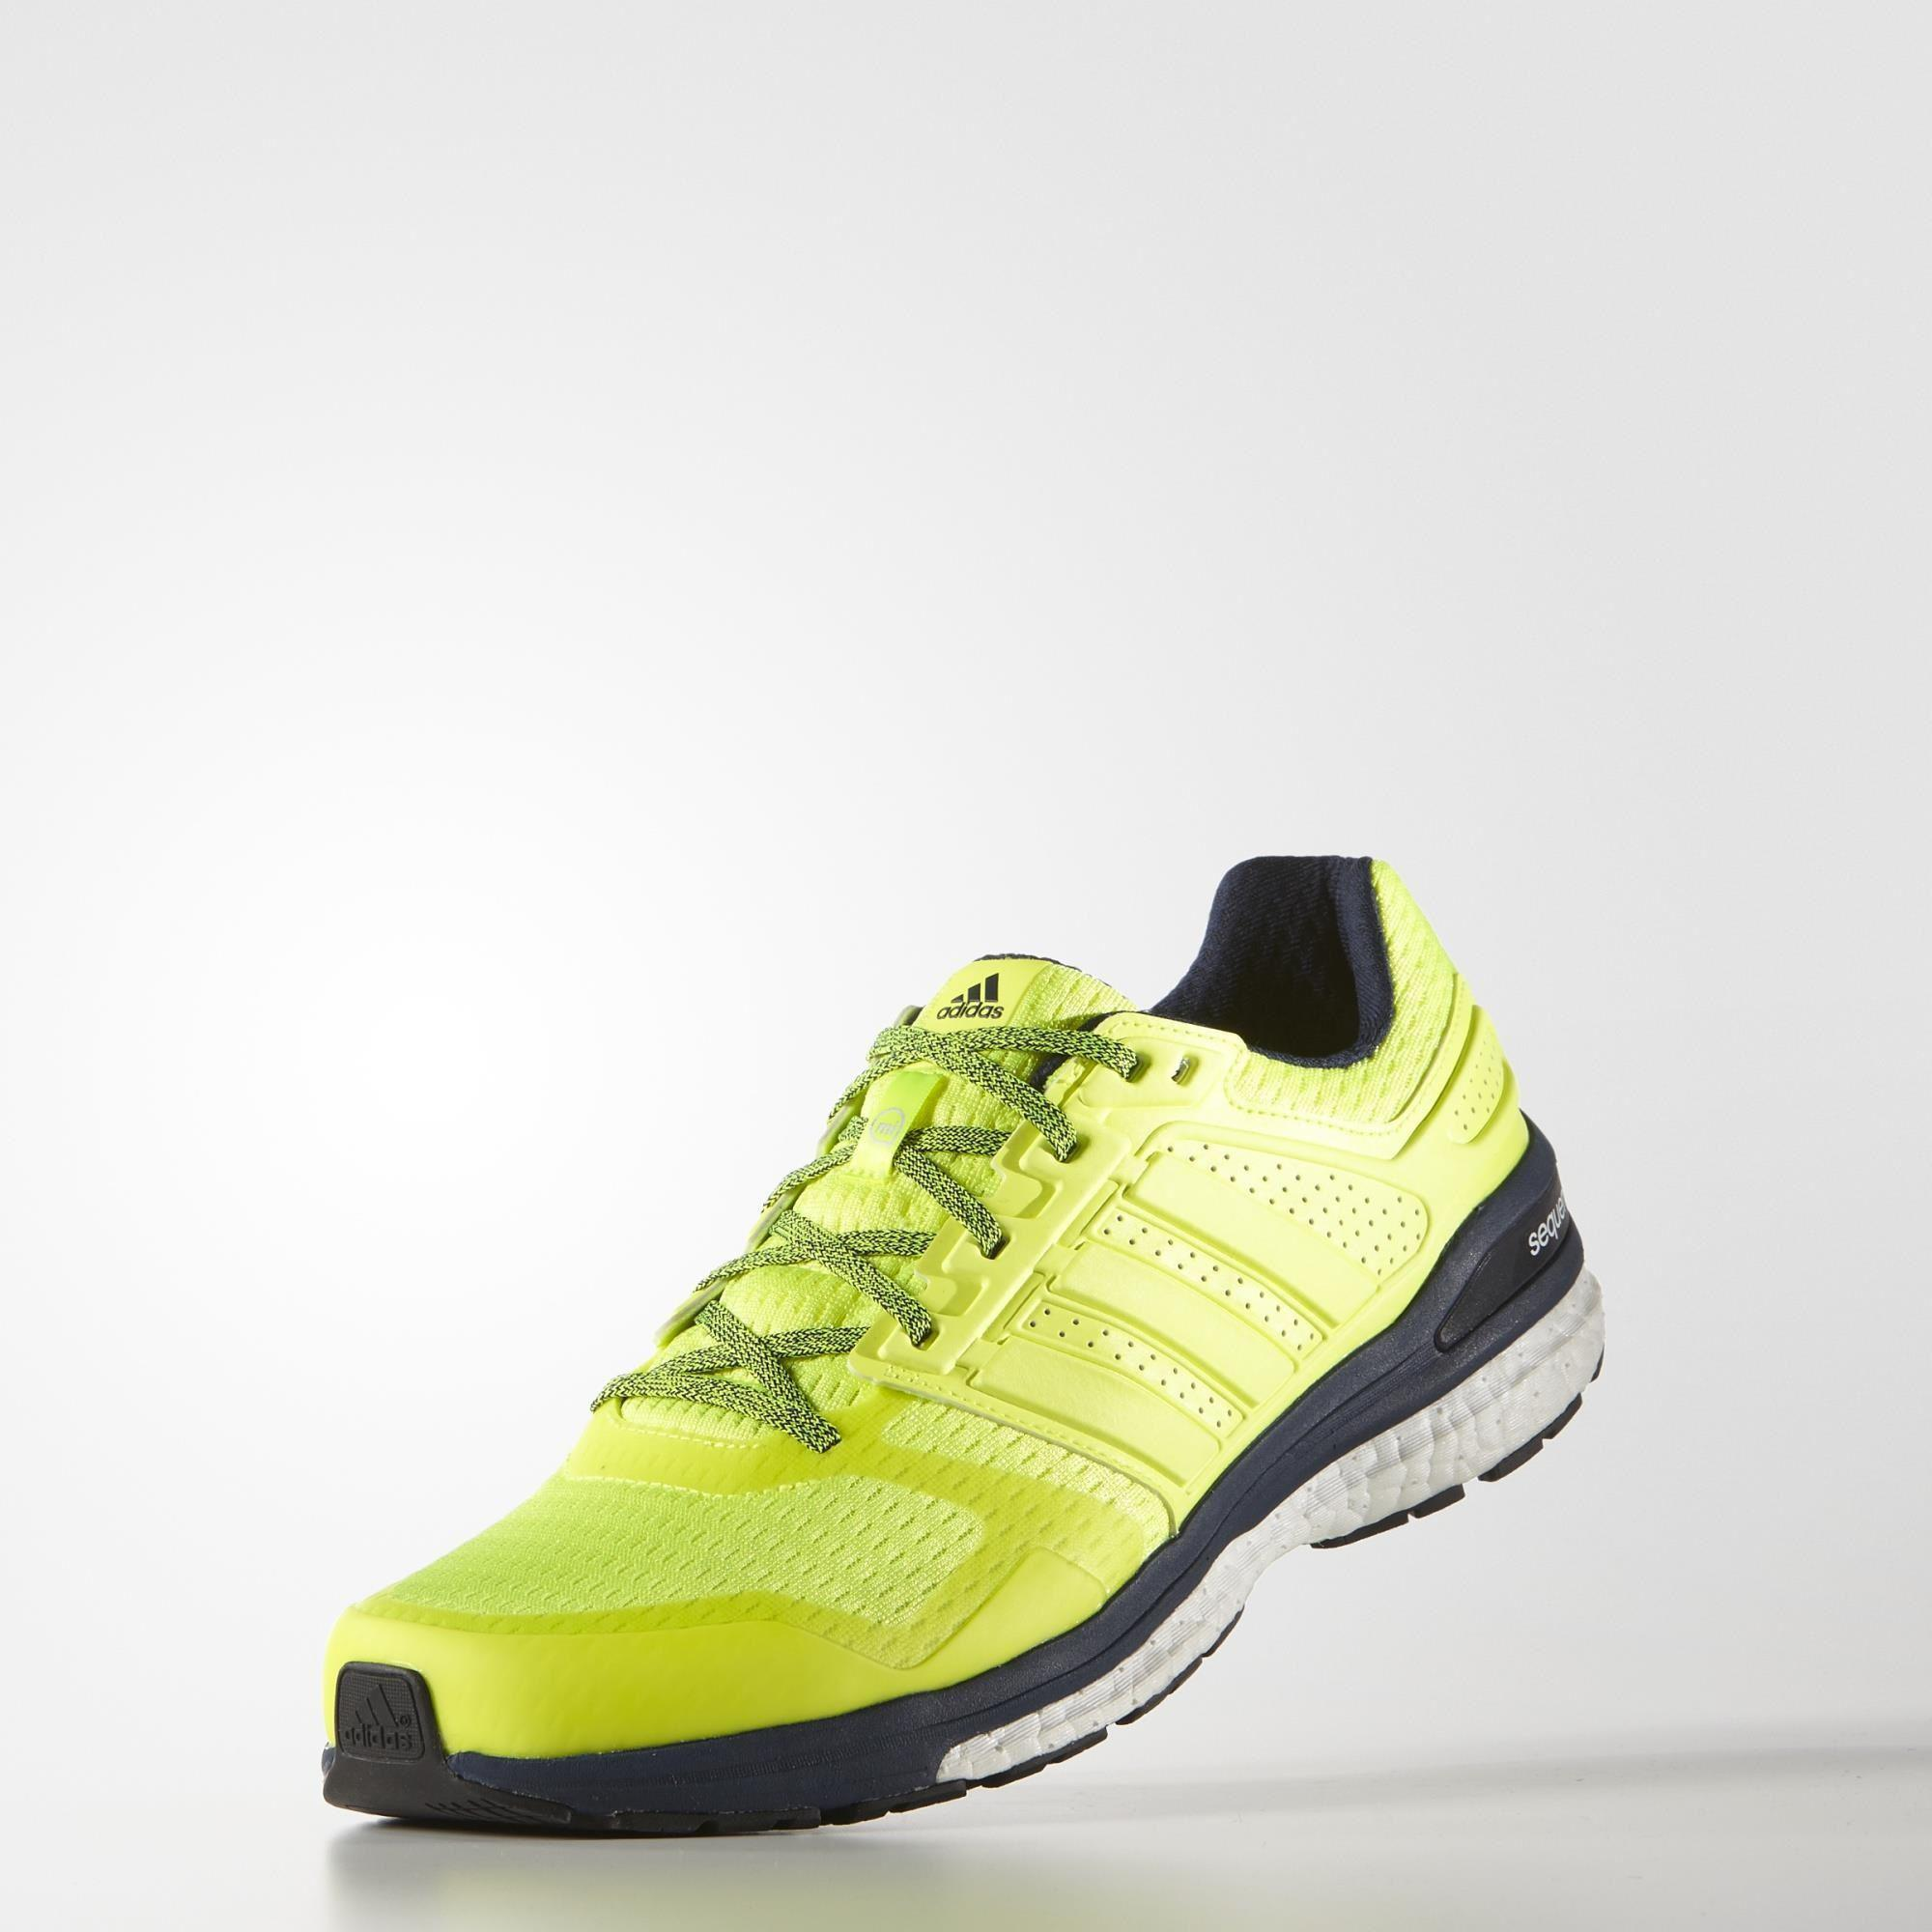 5158fec6365 Adidas Mens Supernova Sequence Boost 8 Running Shoes - Yellow ...